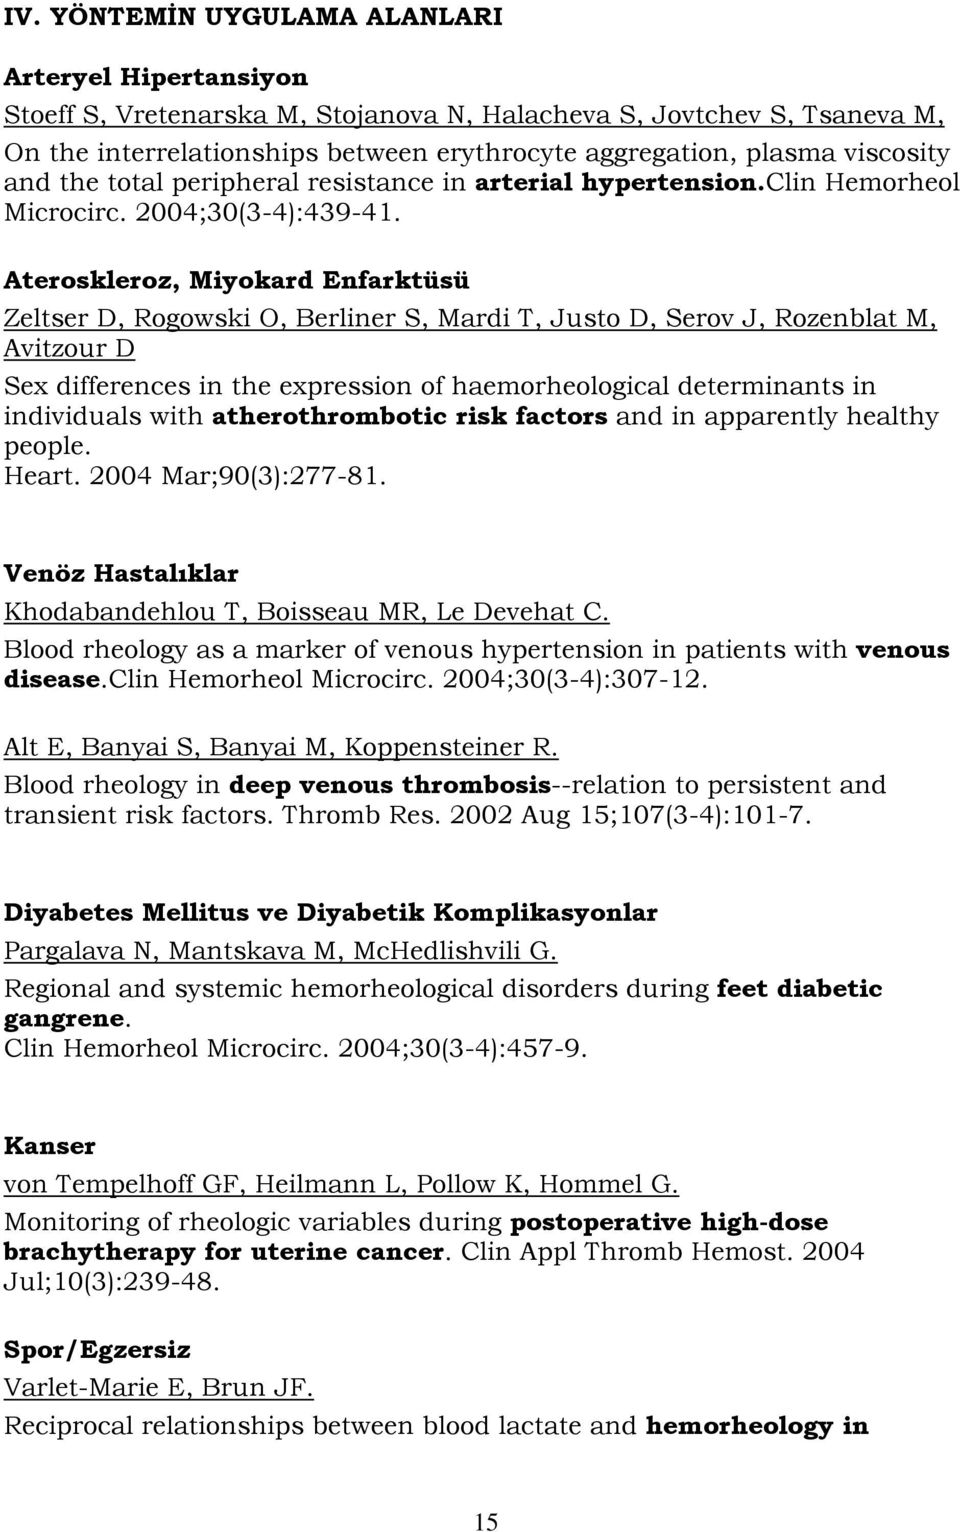 Ateroskleroz, Miyokard Enfarktüsü Zeltser D, Rogowski O, Berliner S, Mardi T, Justo D, Serov J, Rozenblat M, Avitzour D Sex differences in the expression of haemorheological determinants in